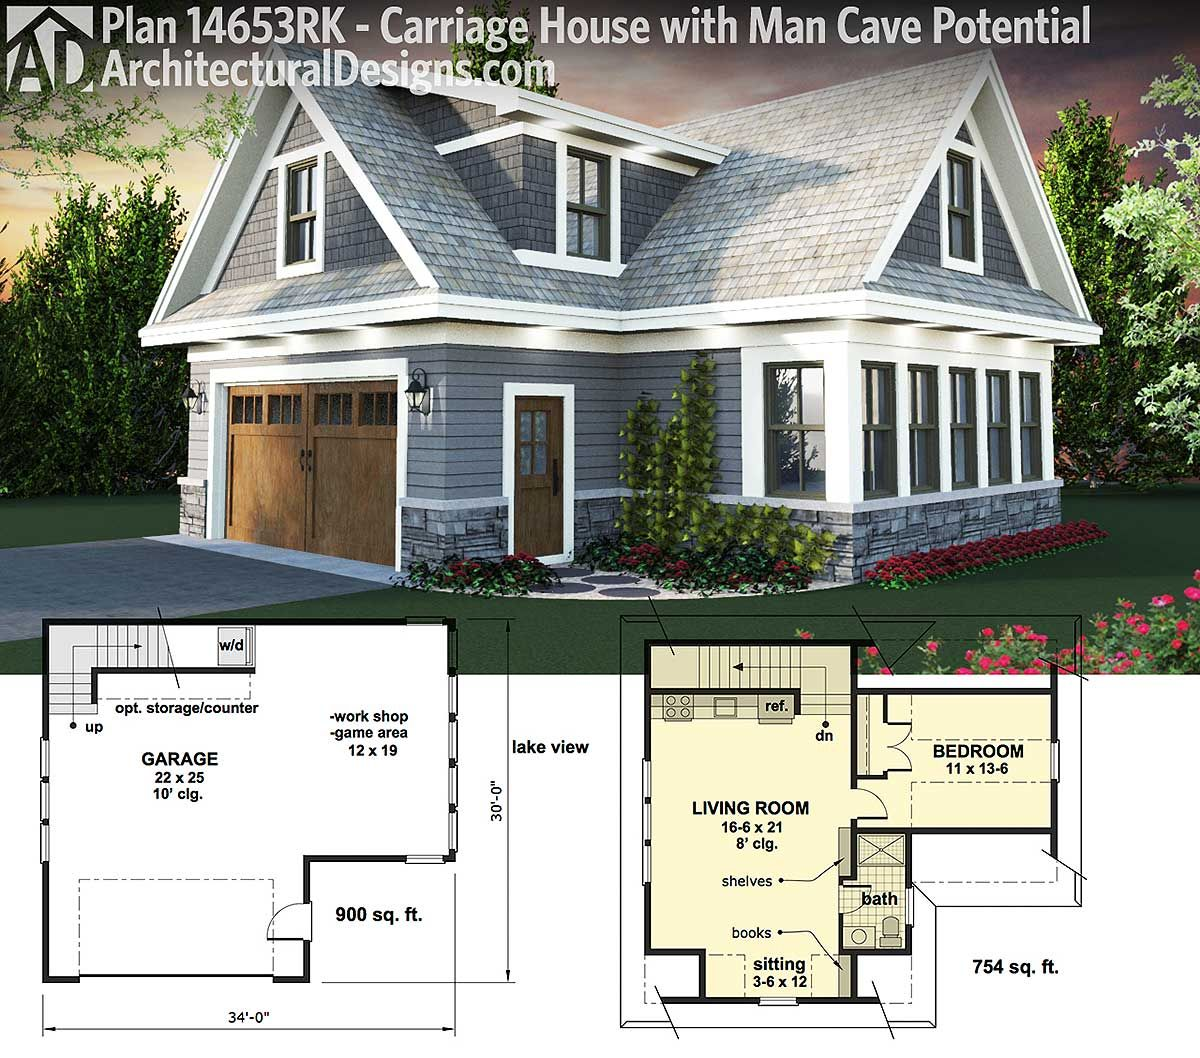 Plan 14653rk carriage house plan with man cave potential for How much to build a garage apartment